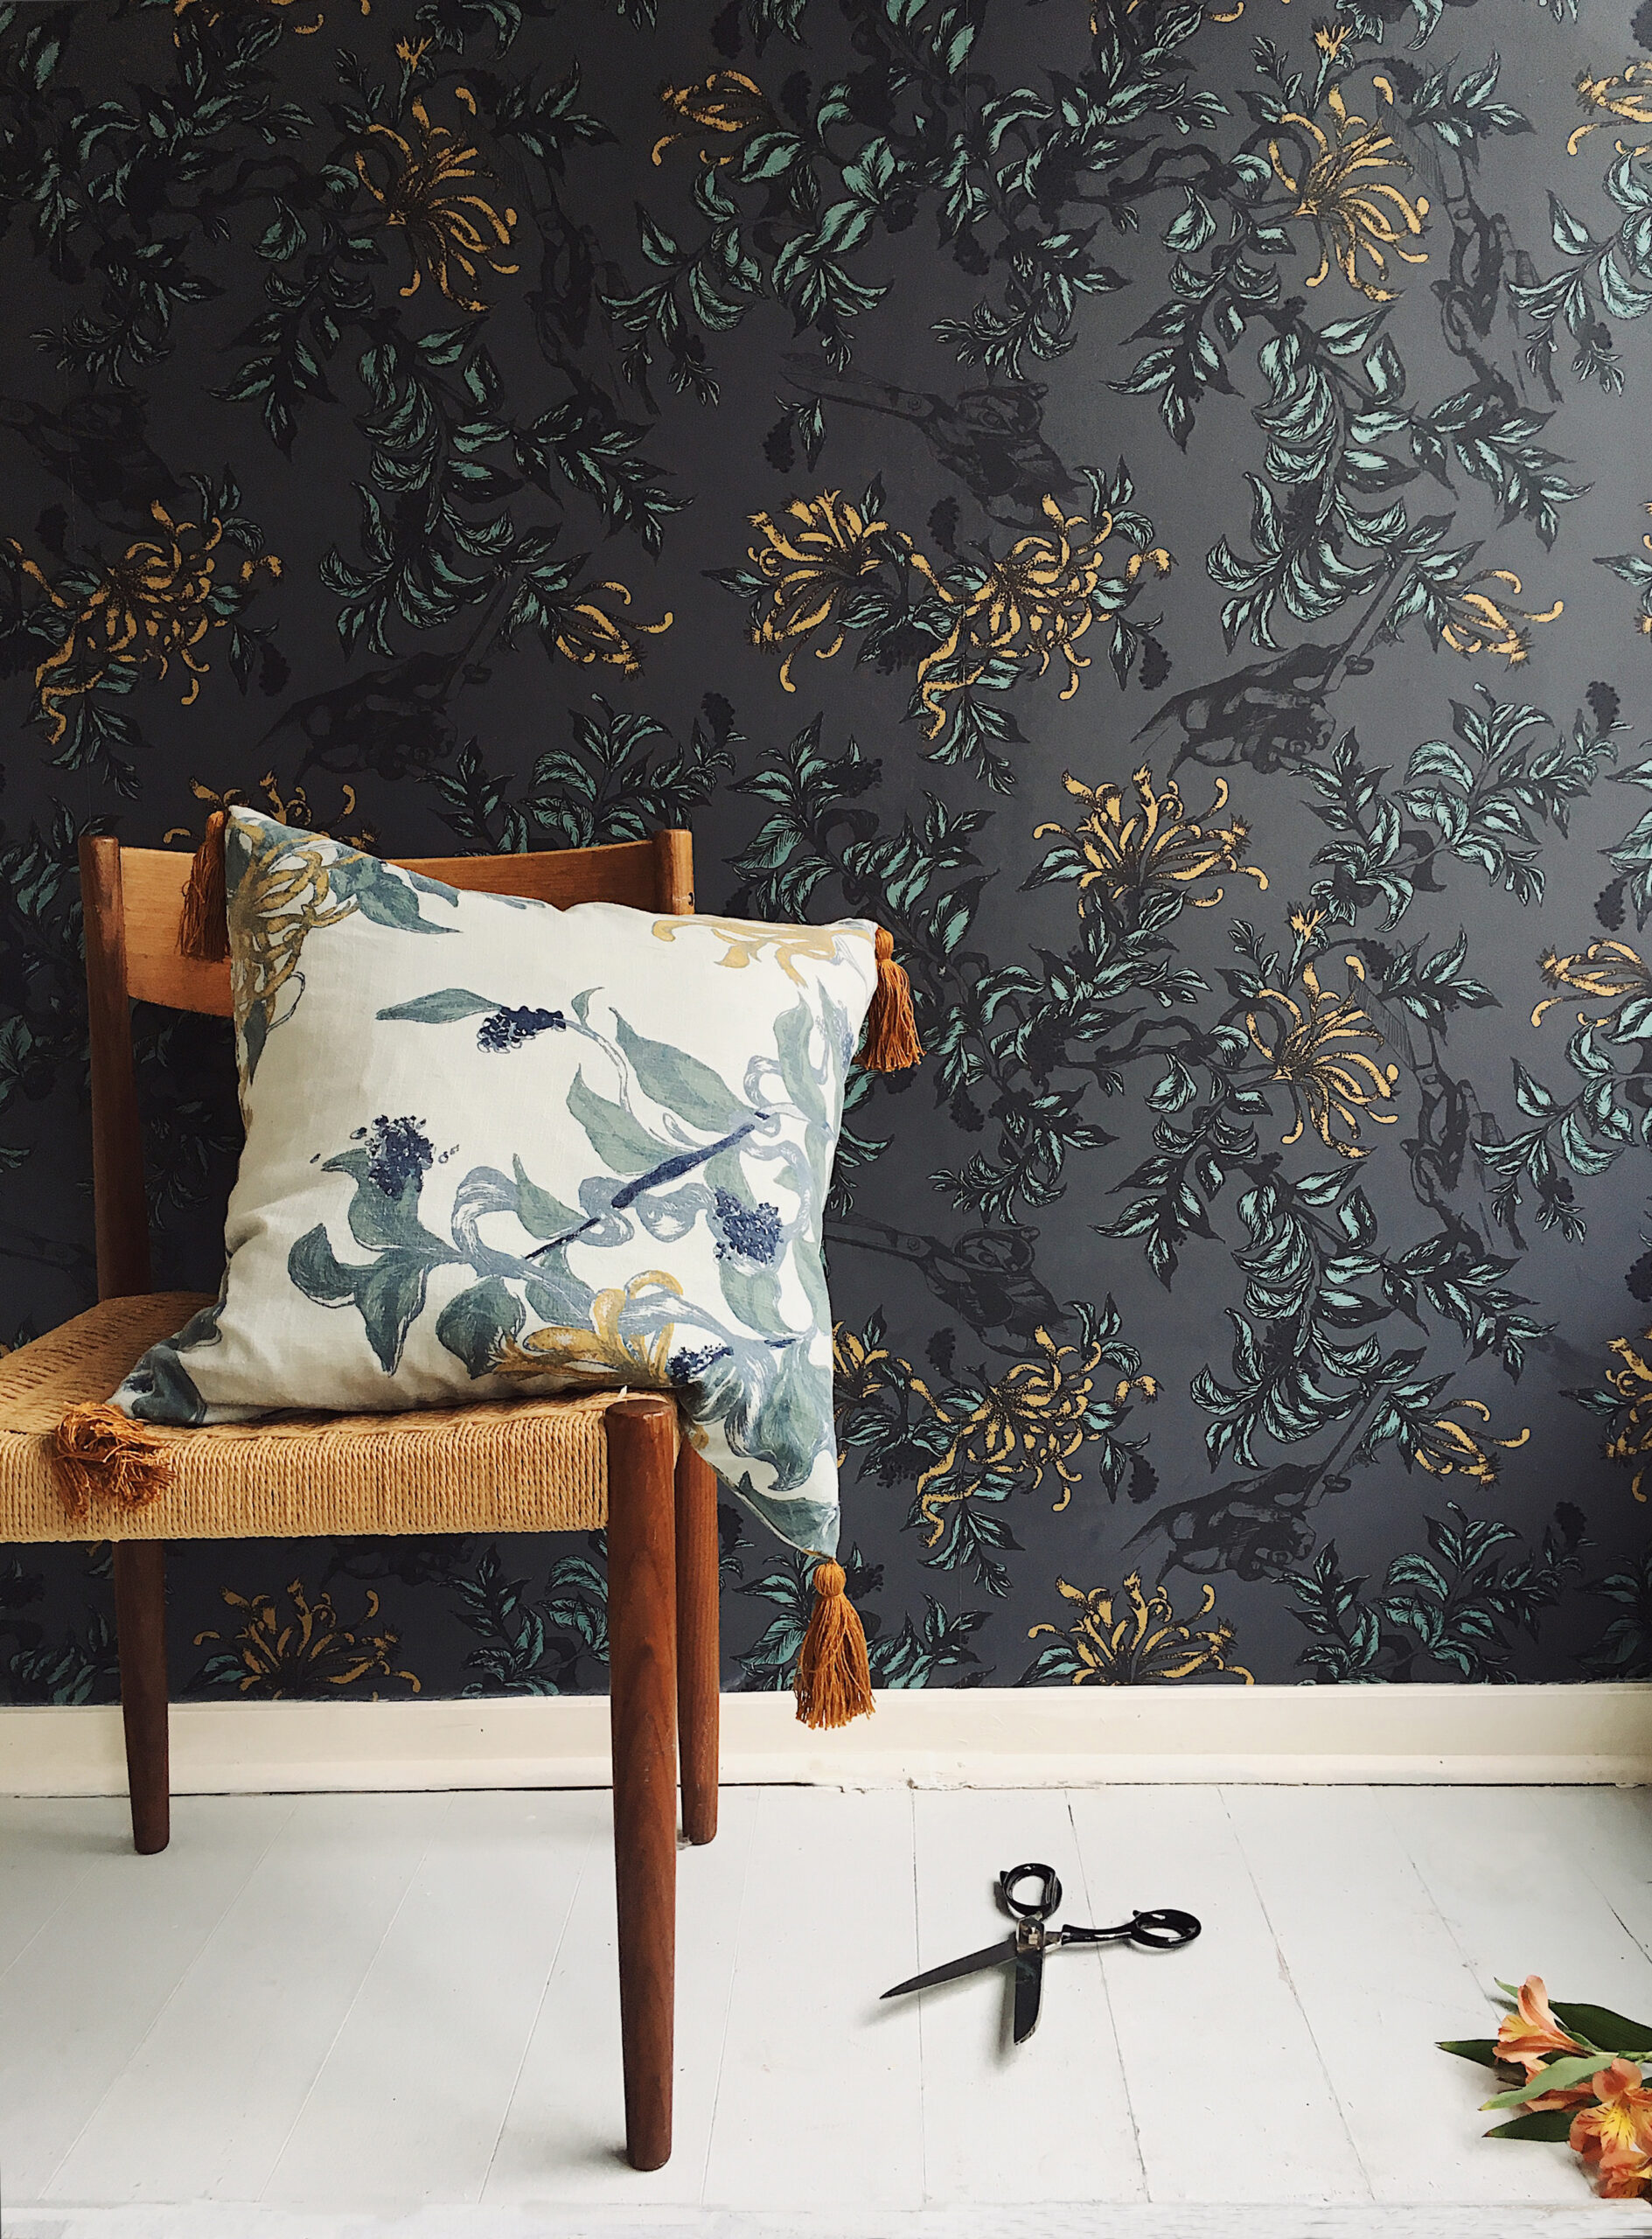 snip floral wallpaper and chair with pillow